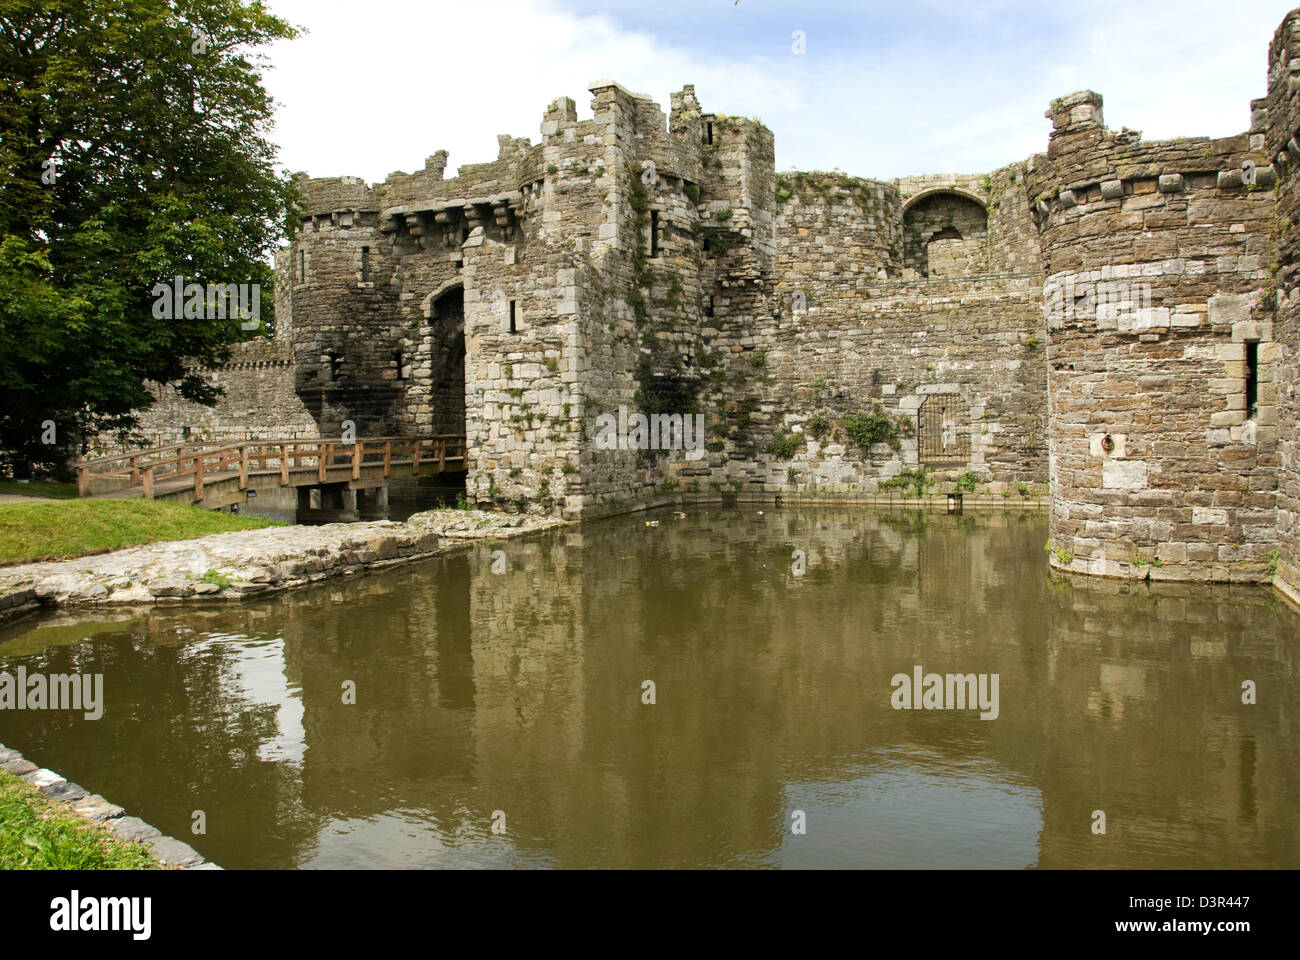 WALES; ANGLESEY; BEAUMARIS CASTLE; ENTRANCE AND MOAT - Stock Image